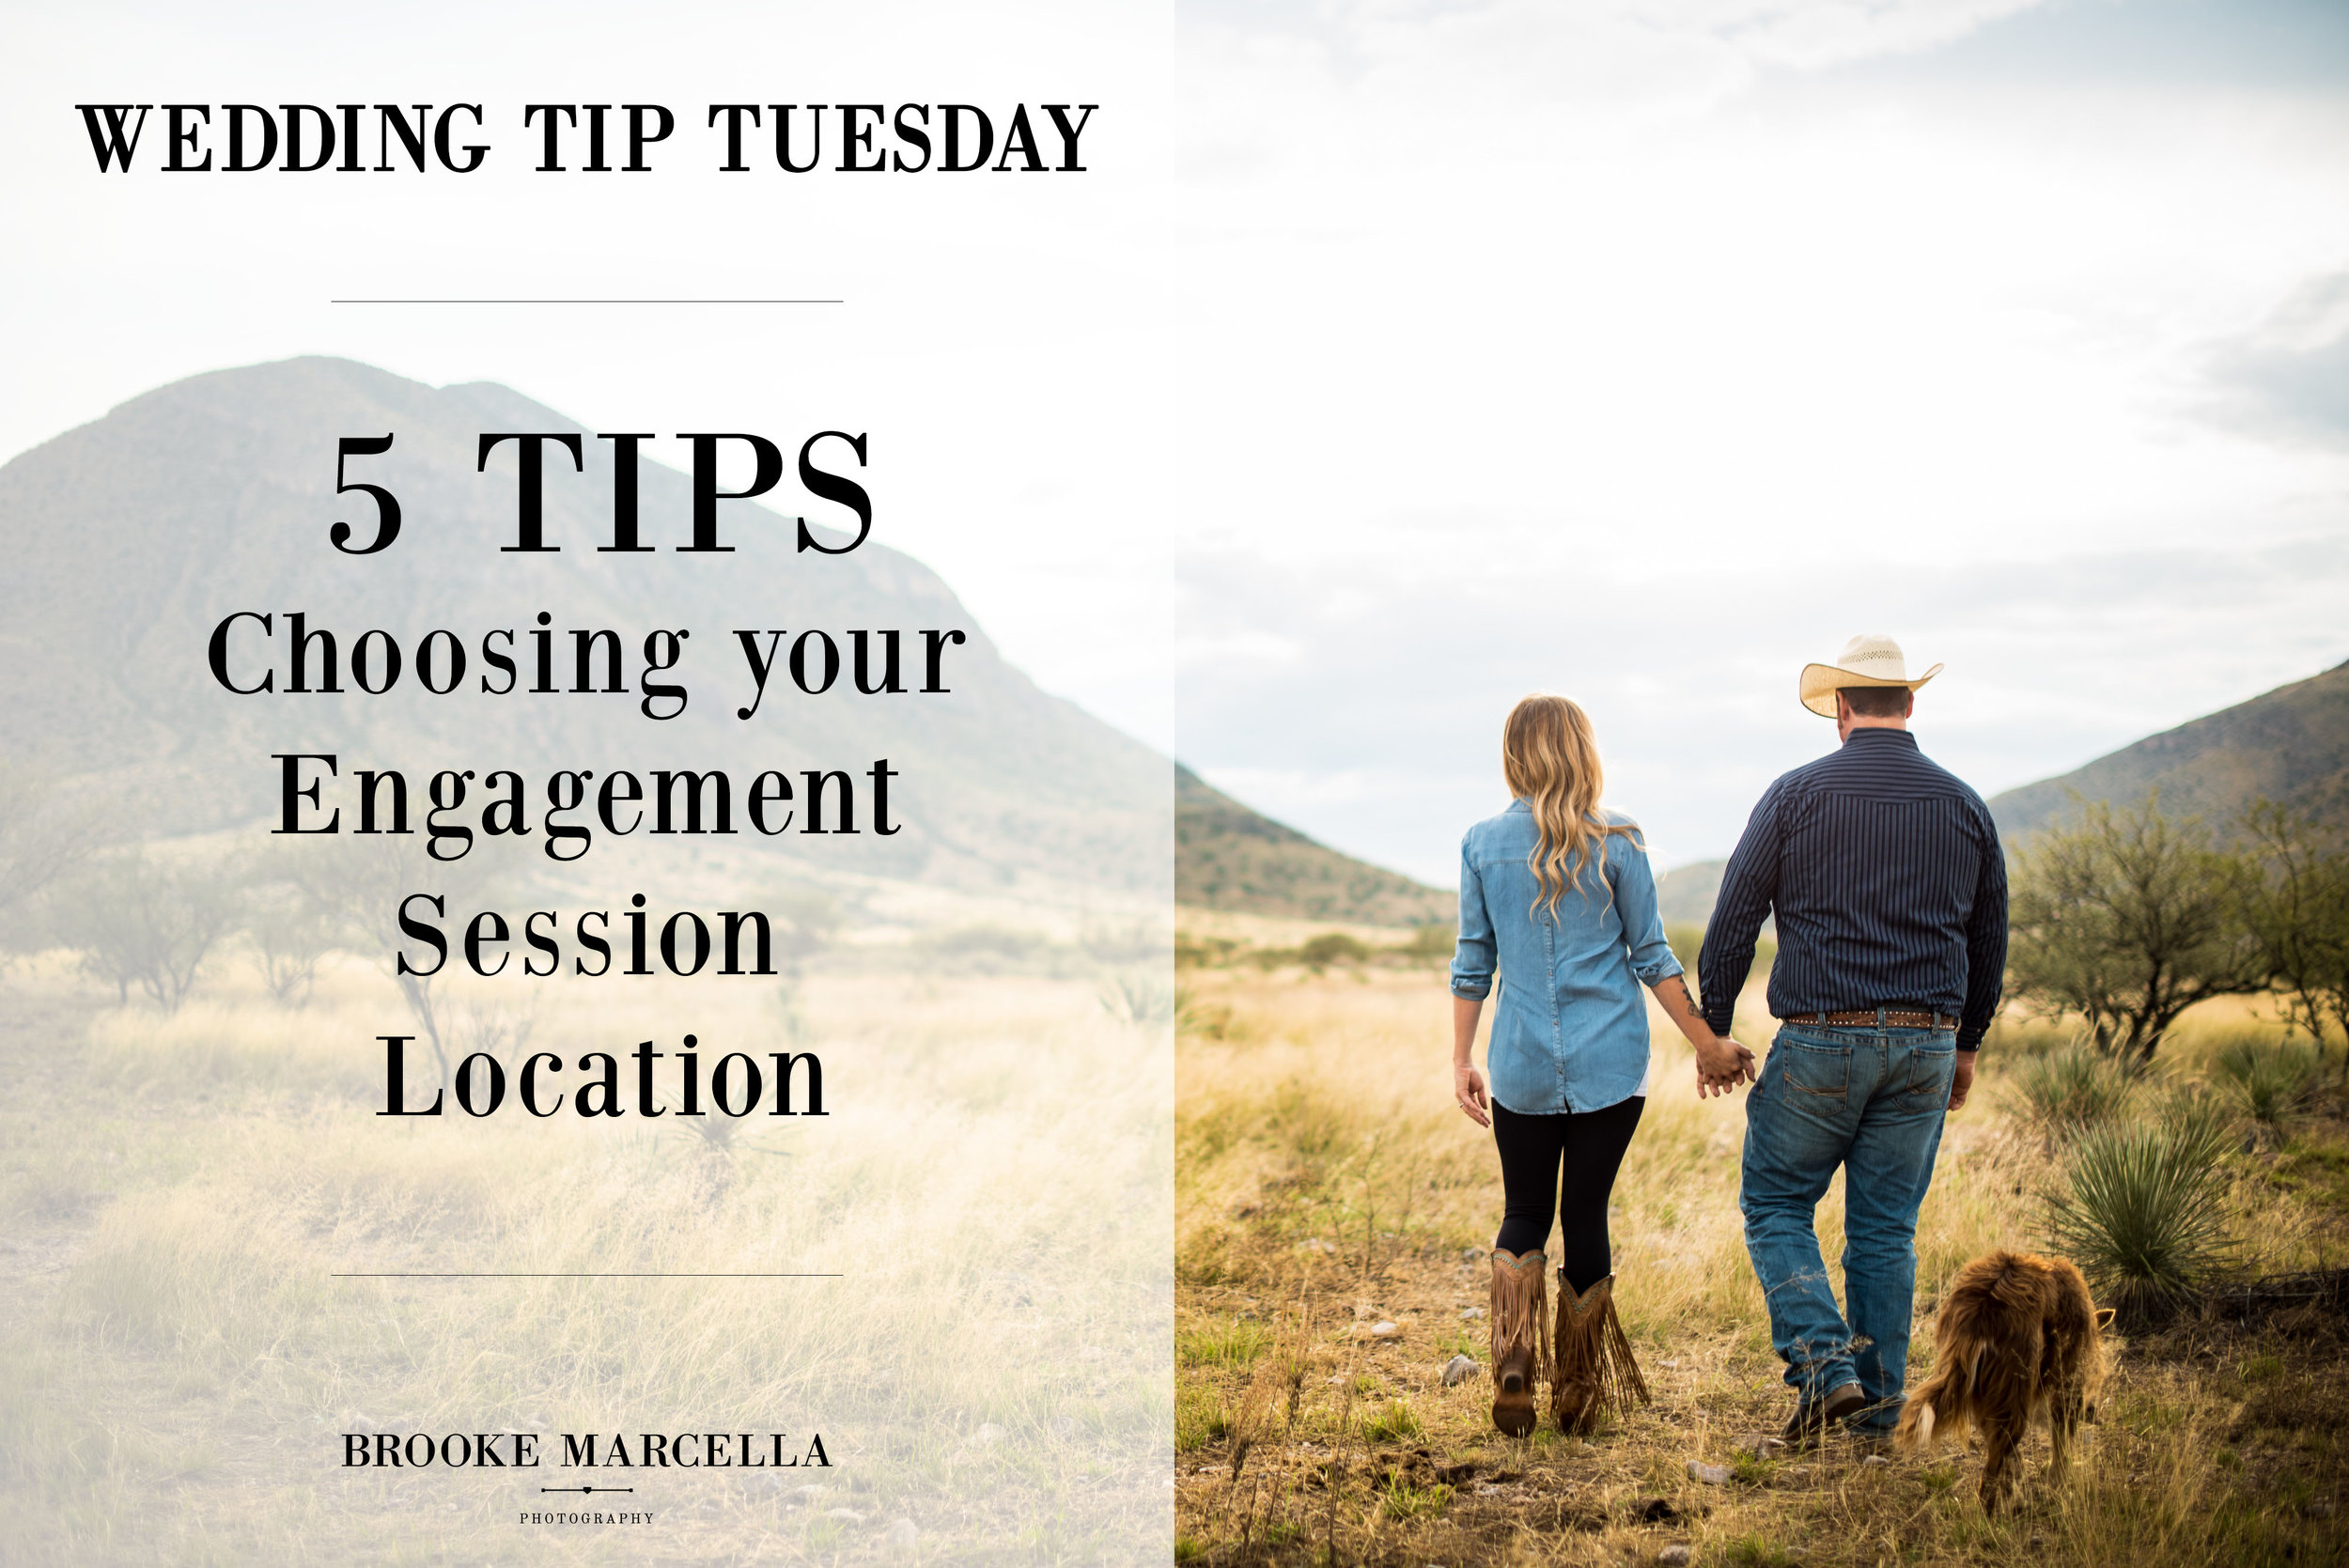 How to Choose Your Engagement Session Location, tips from a professional Arizona Wedding Photographer.